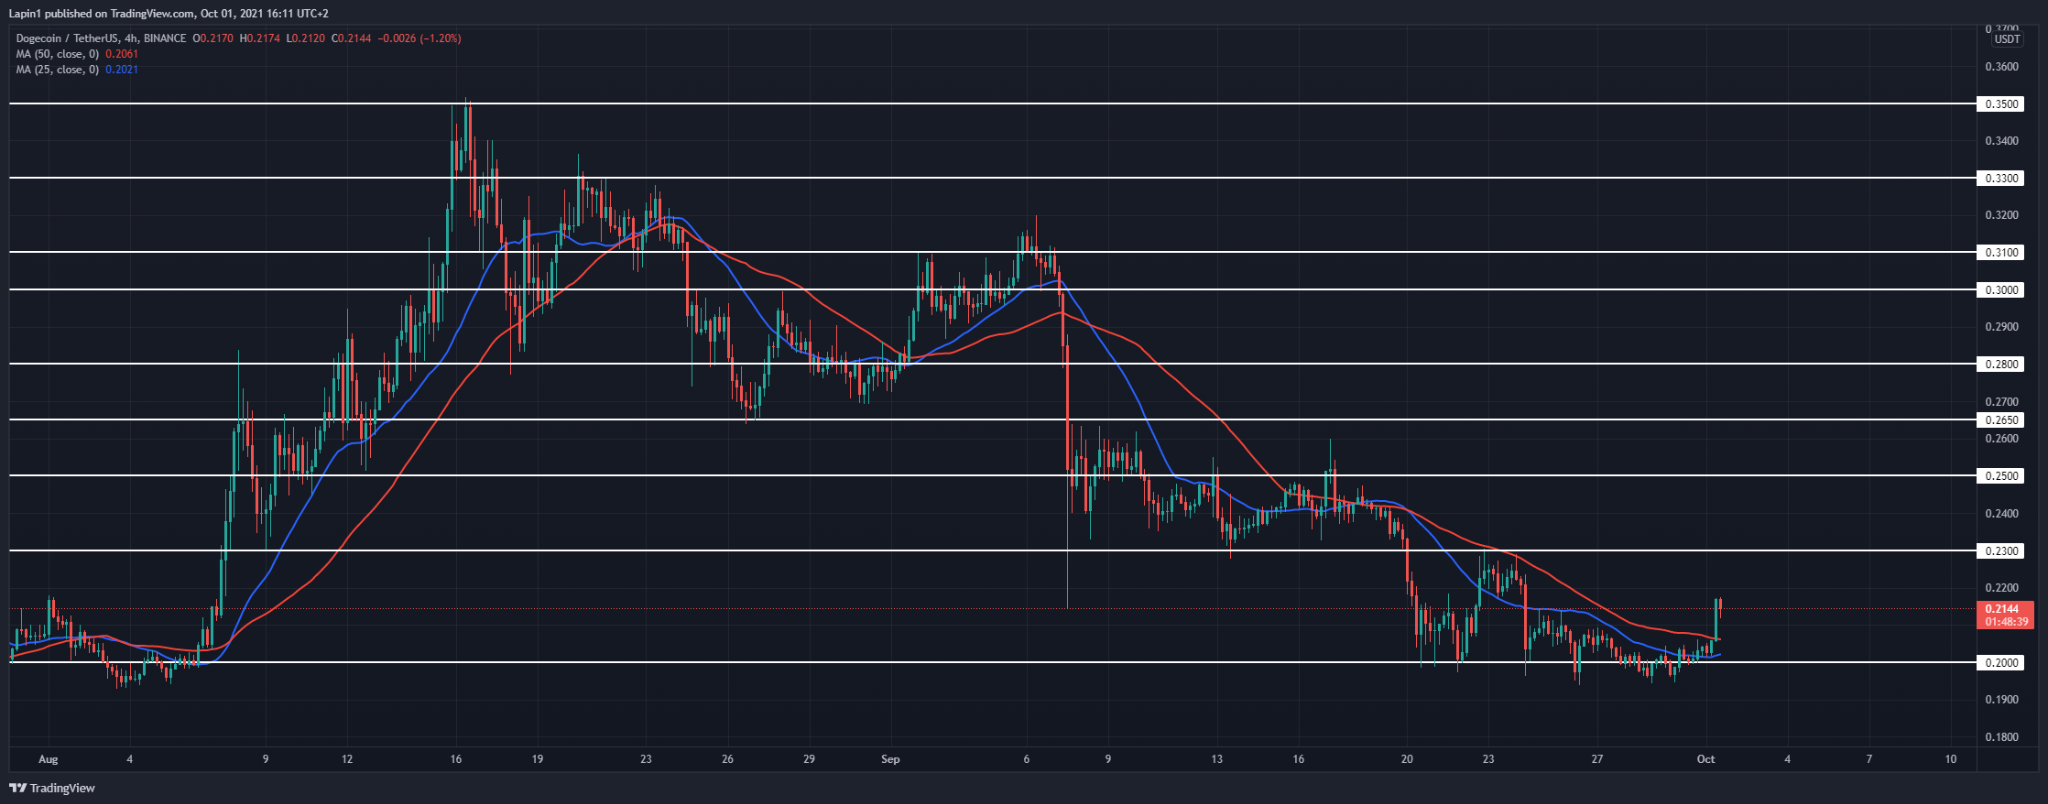 Dogecoin Price Analysis: DOGE rebounds from $0.20 support, further upside to follow?